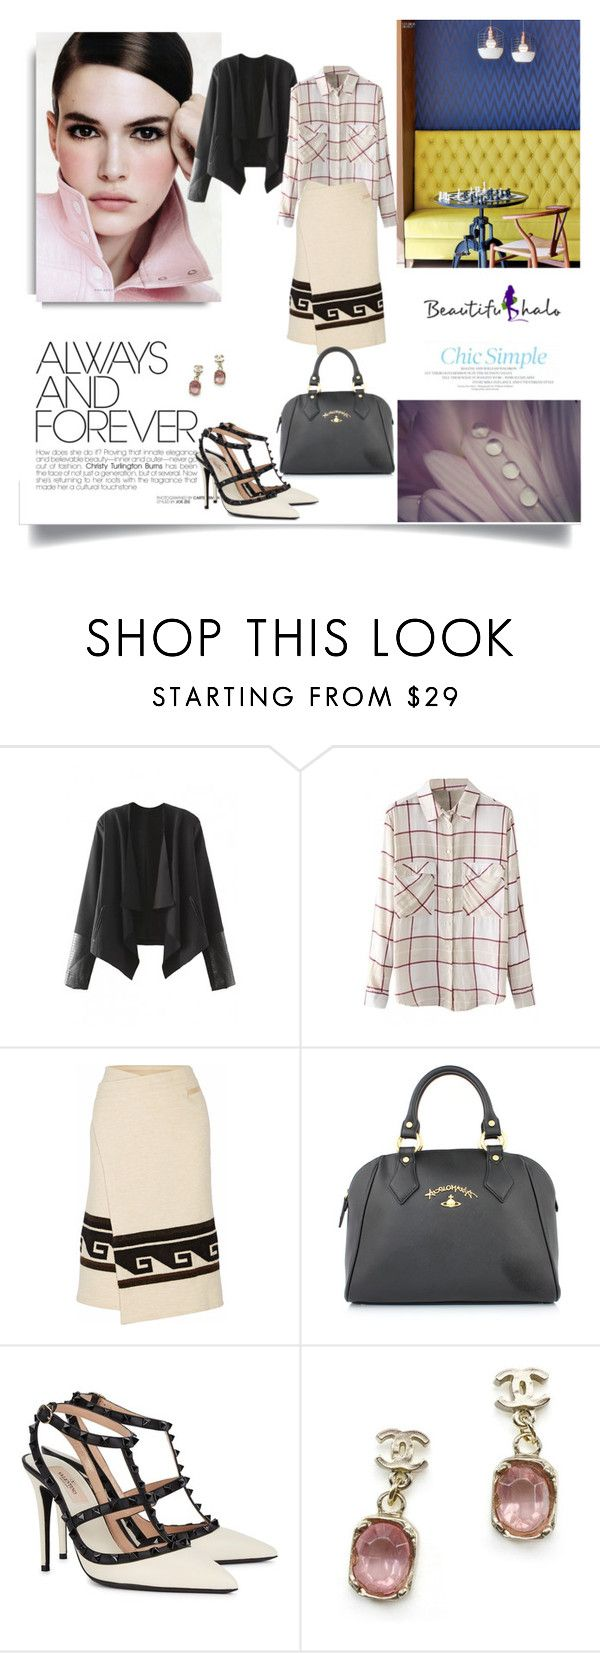 """""""www.beautifulhalo.com"""" by nahed-samer ❤ liked on Polyvore featuring Isabel Marant, Vivienne Westwood, Valentino, Chanel and beautifulhalo"""